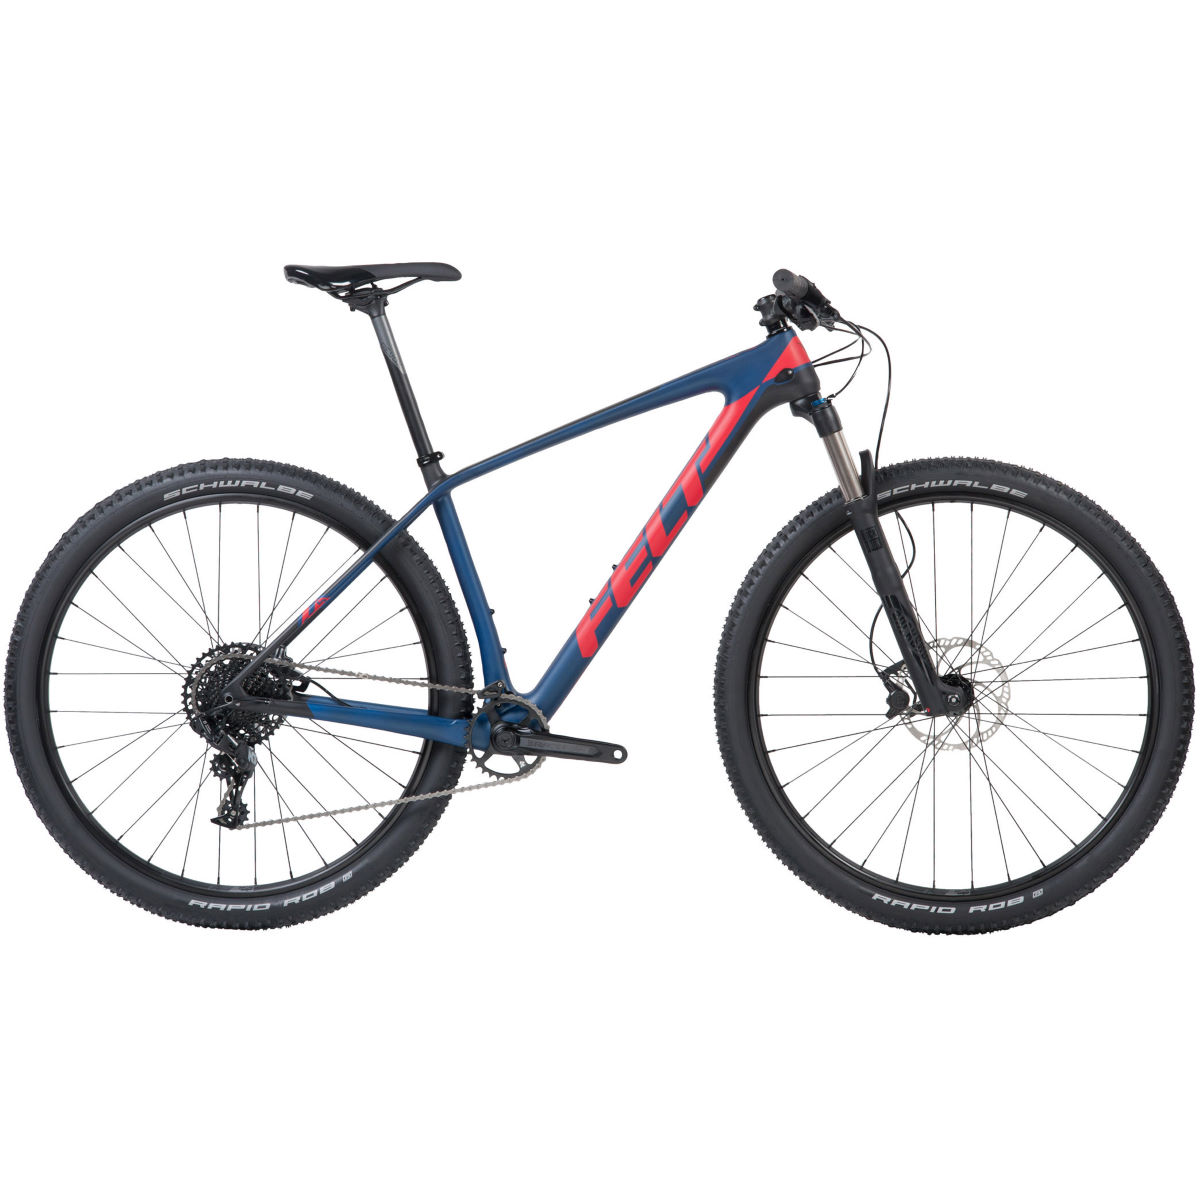 VTT semi-rigide Felt Doctrine 5 XC (carbone, 2018) - 18'' Stock Bike